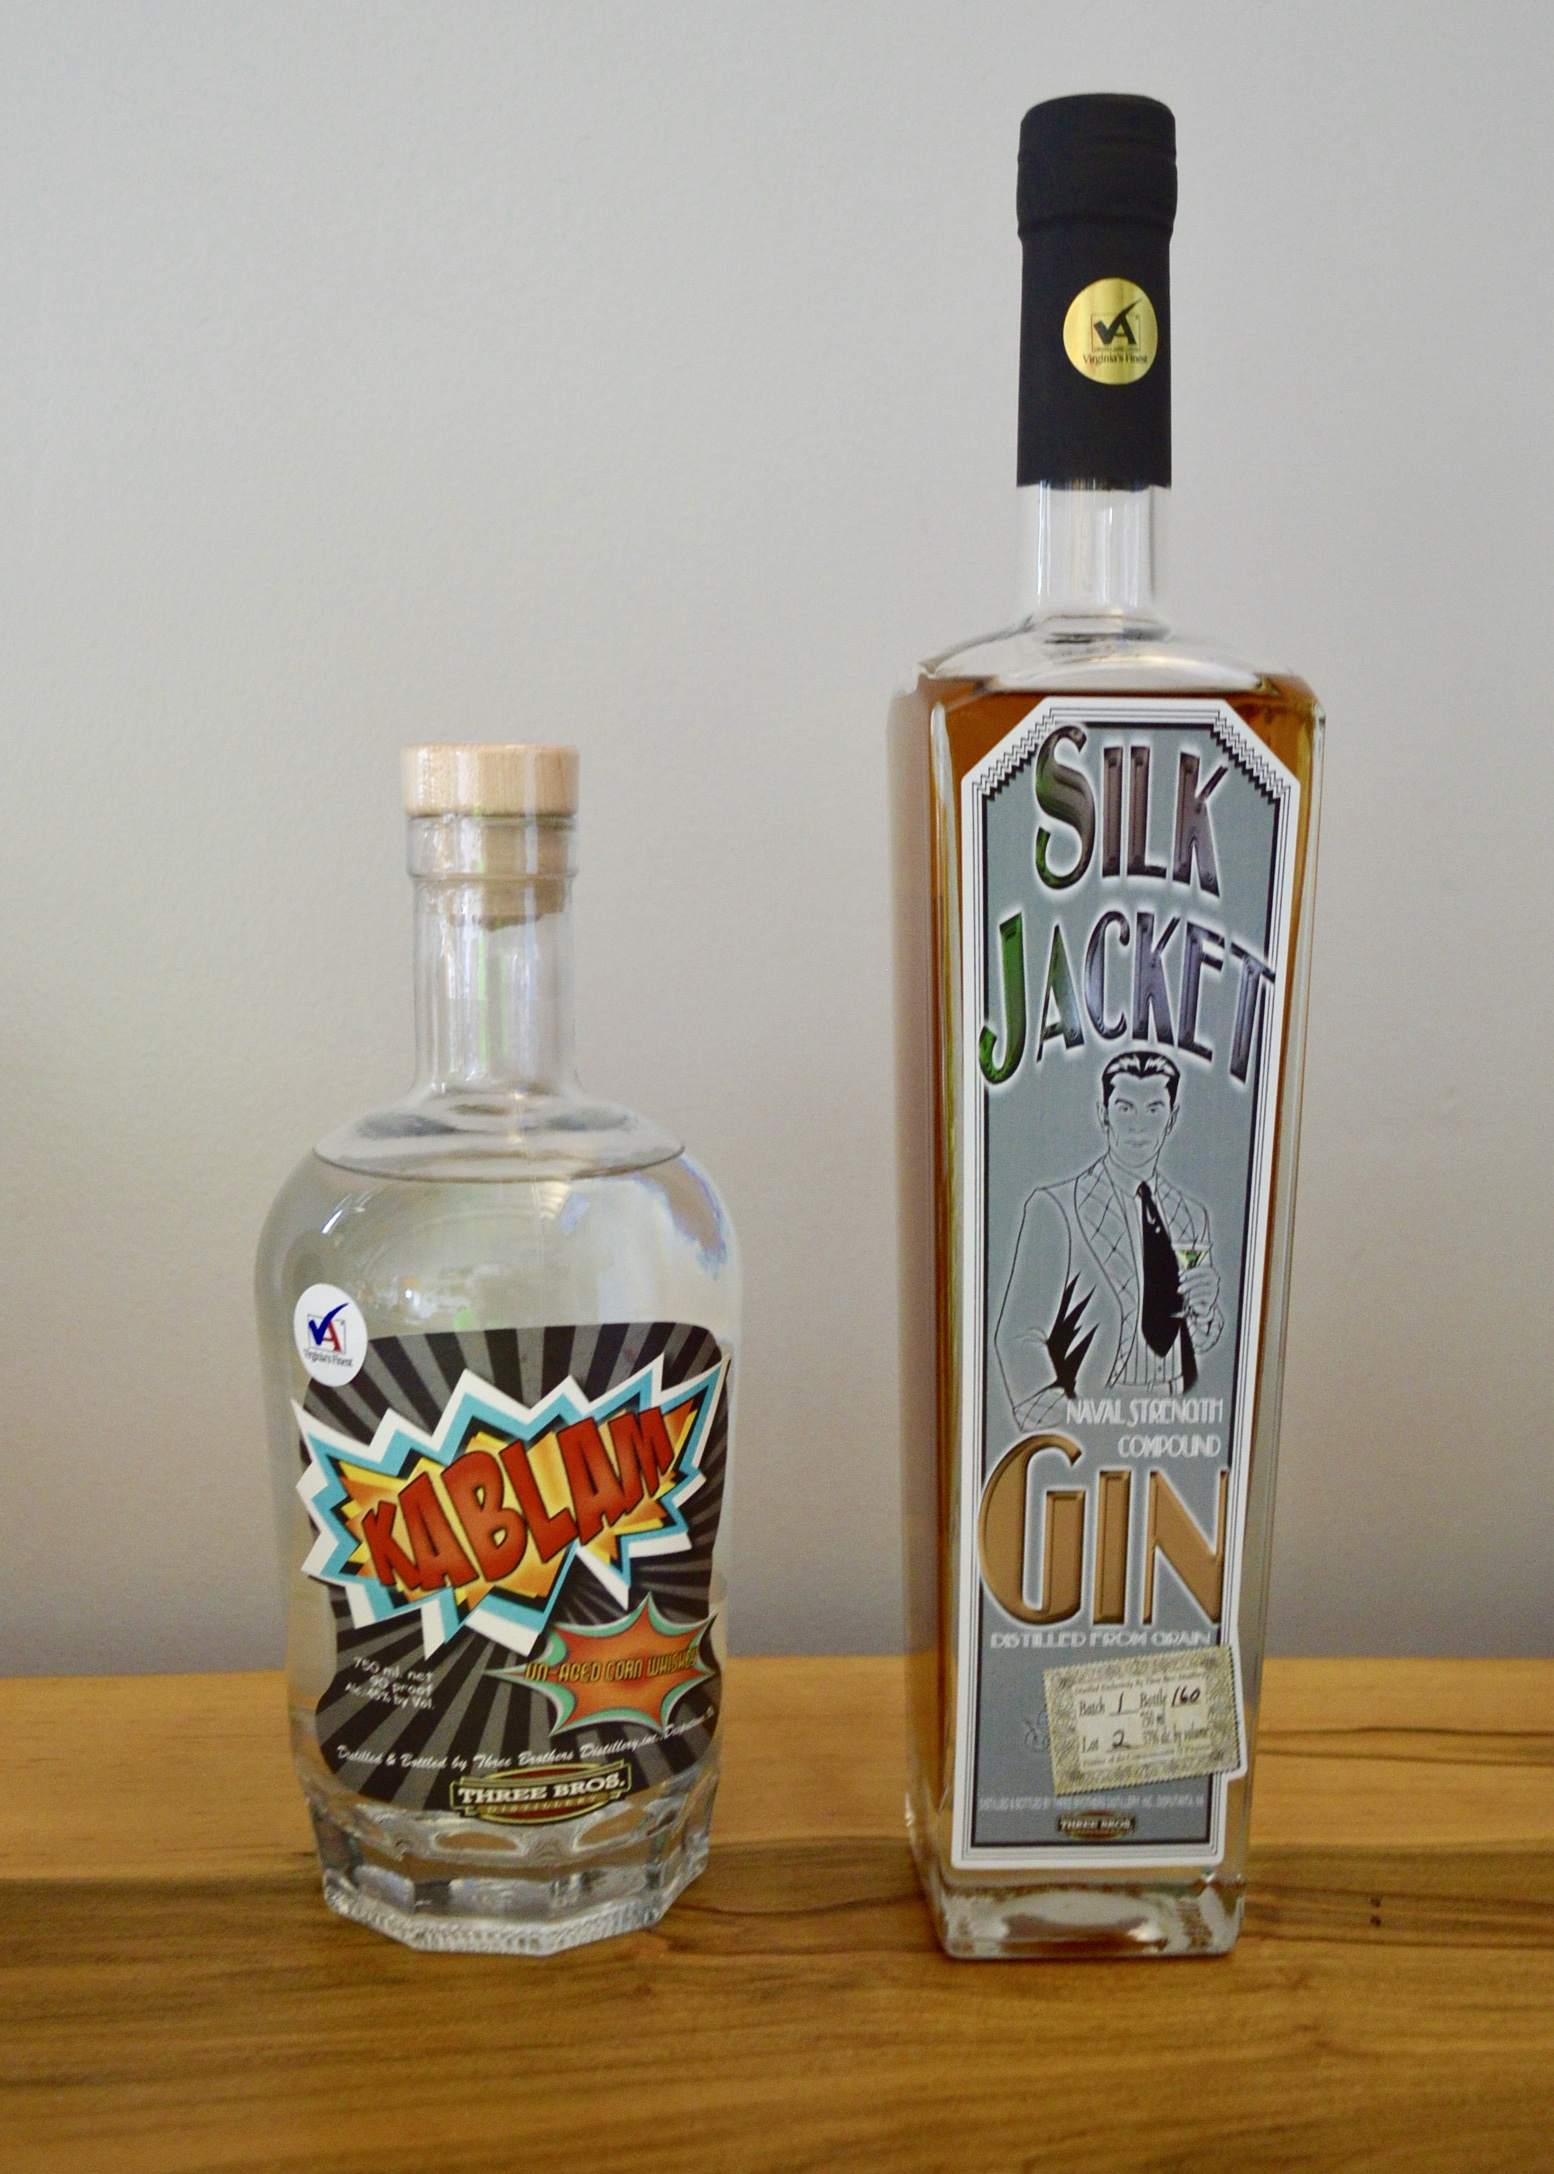 Silk Jacket Craft-made gin